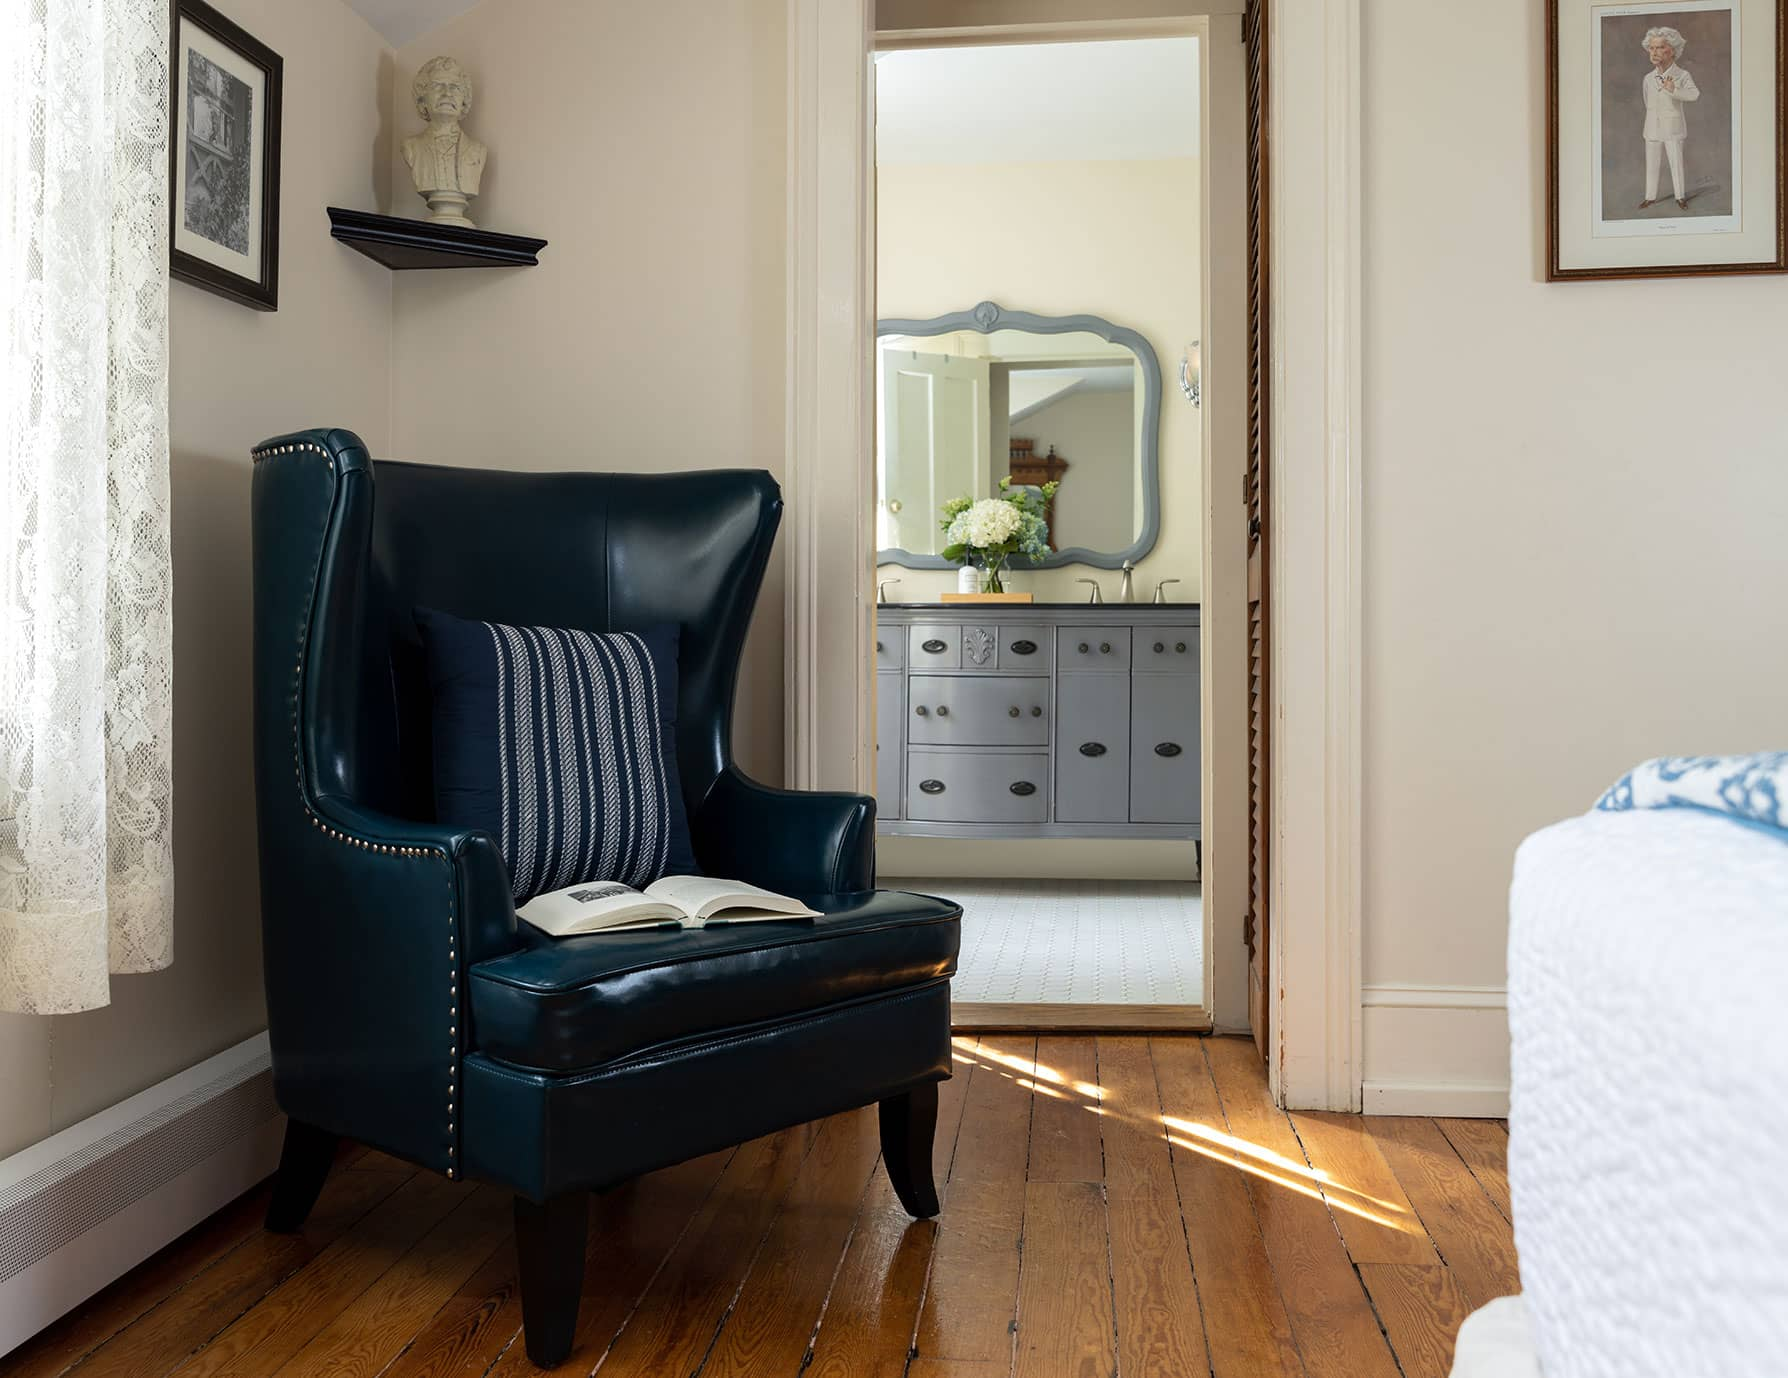 Chair and Room at a Cooperstown, New York B&B